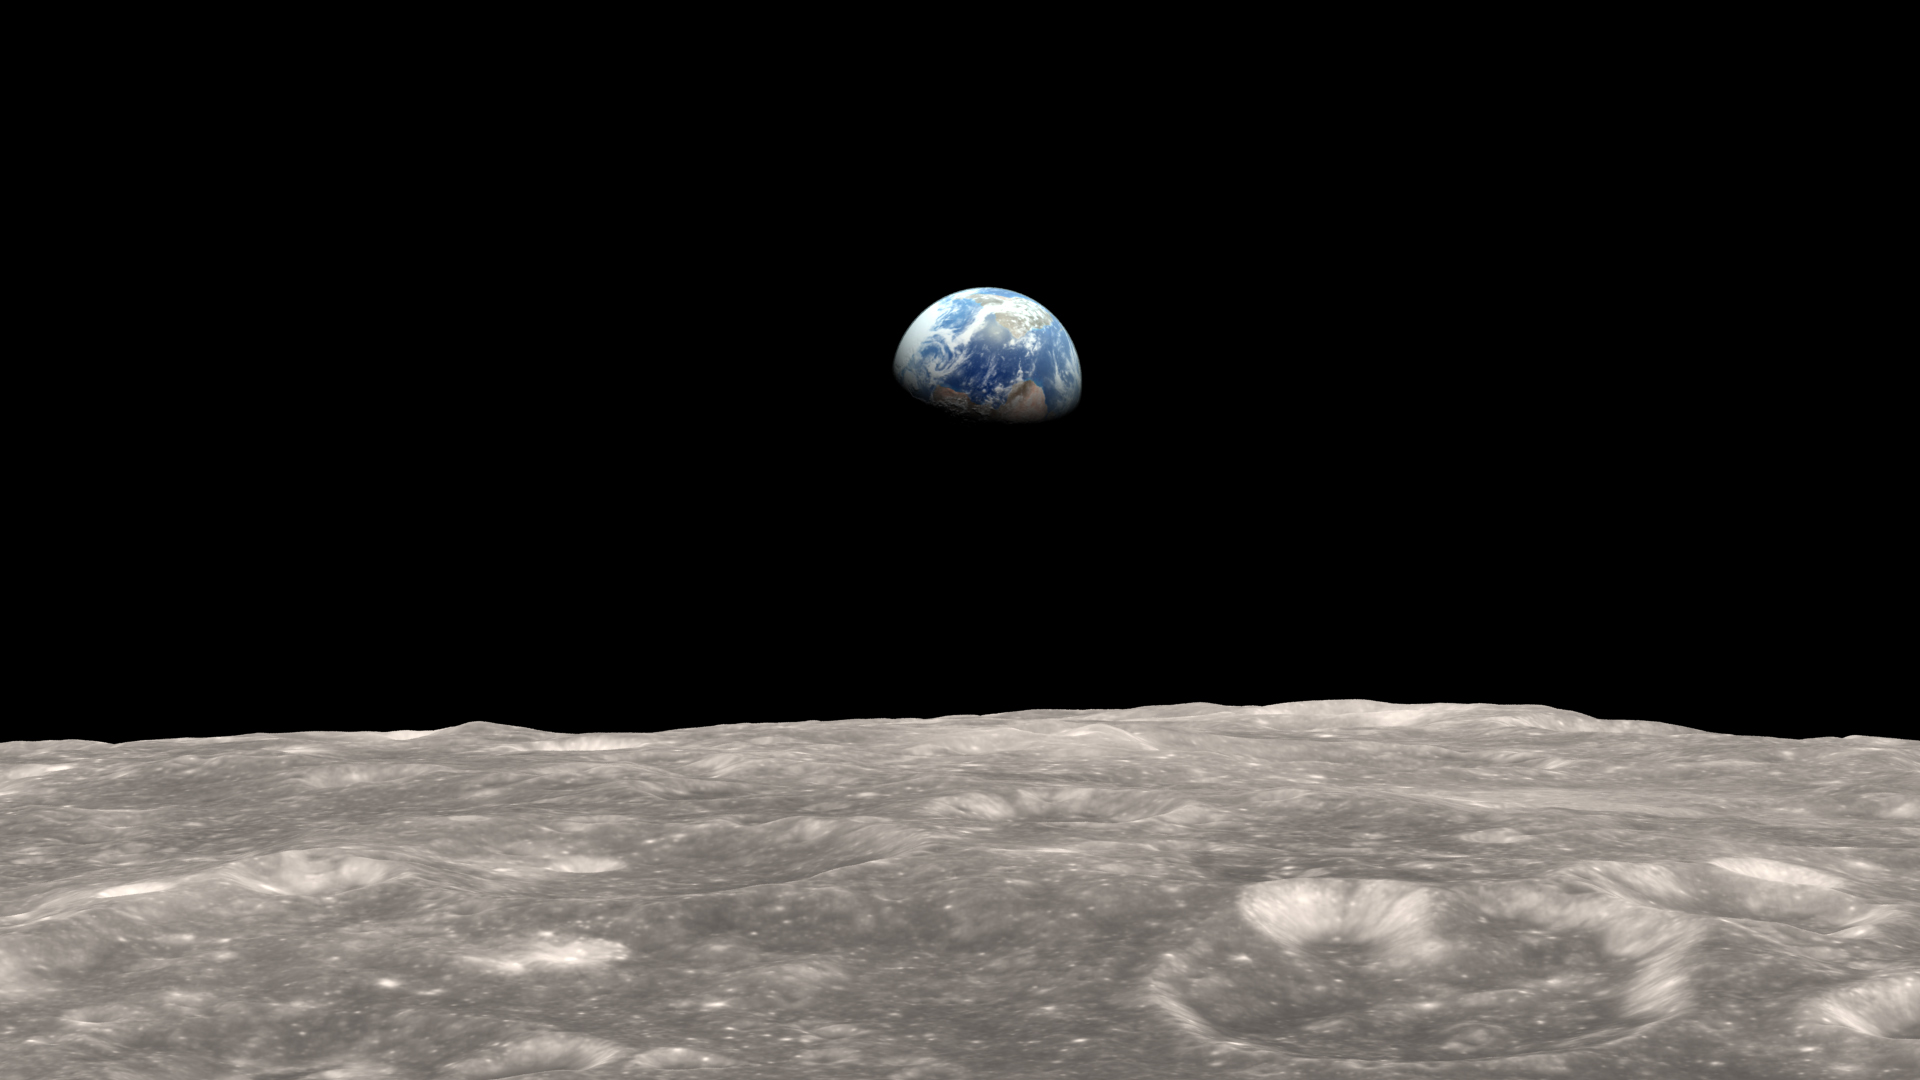 Photo of Illustration of Earth as seen from the moon. The gravitational tug-of-war between Earth and the moon raises a small bulge on the moon. The position of this bulge shifts slightly over time.